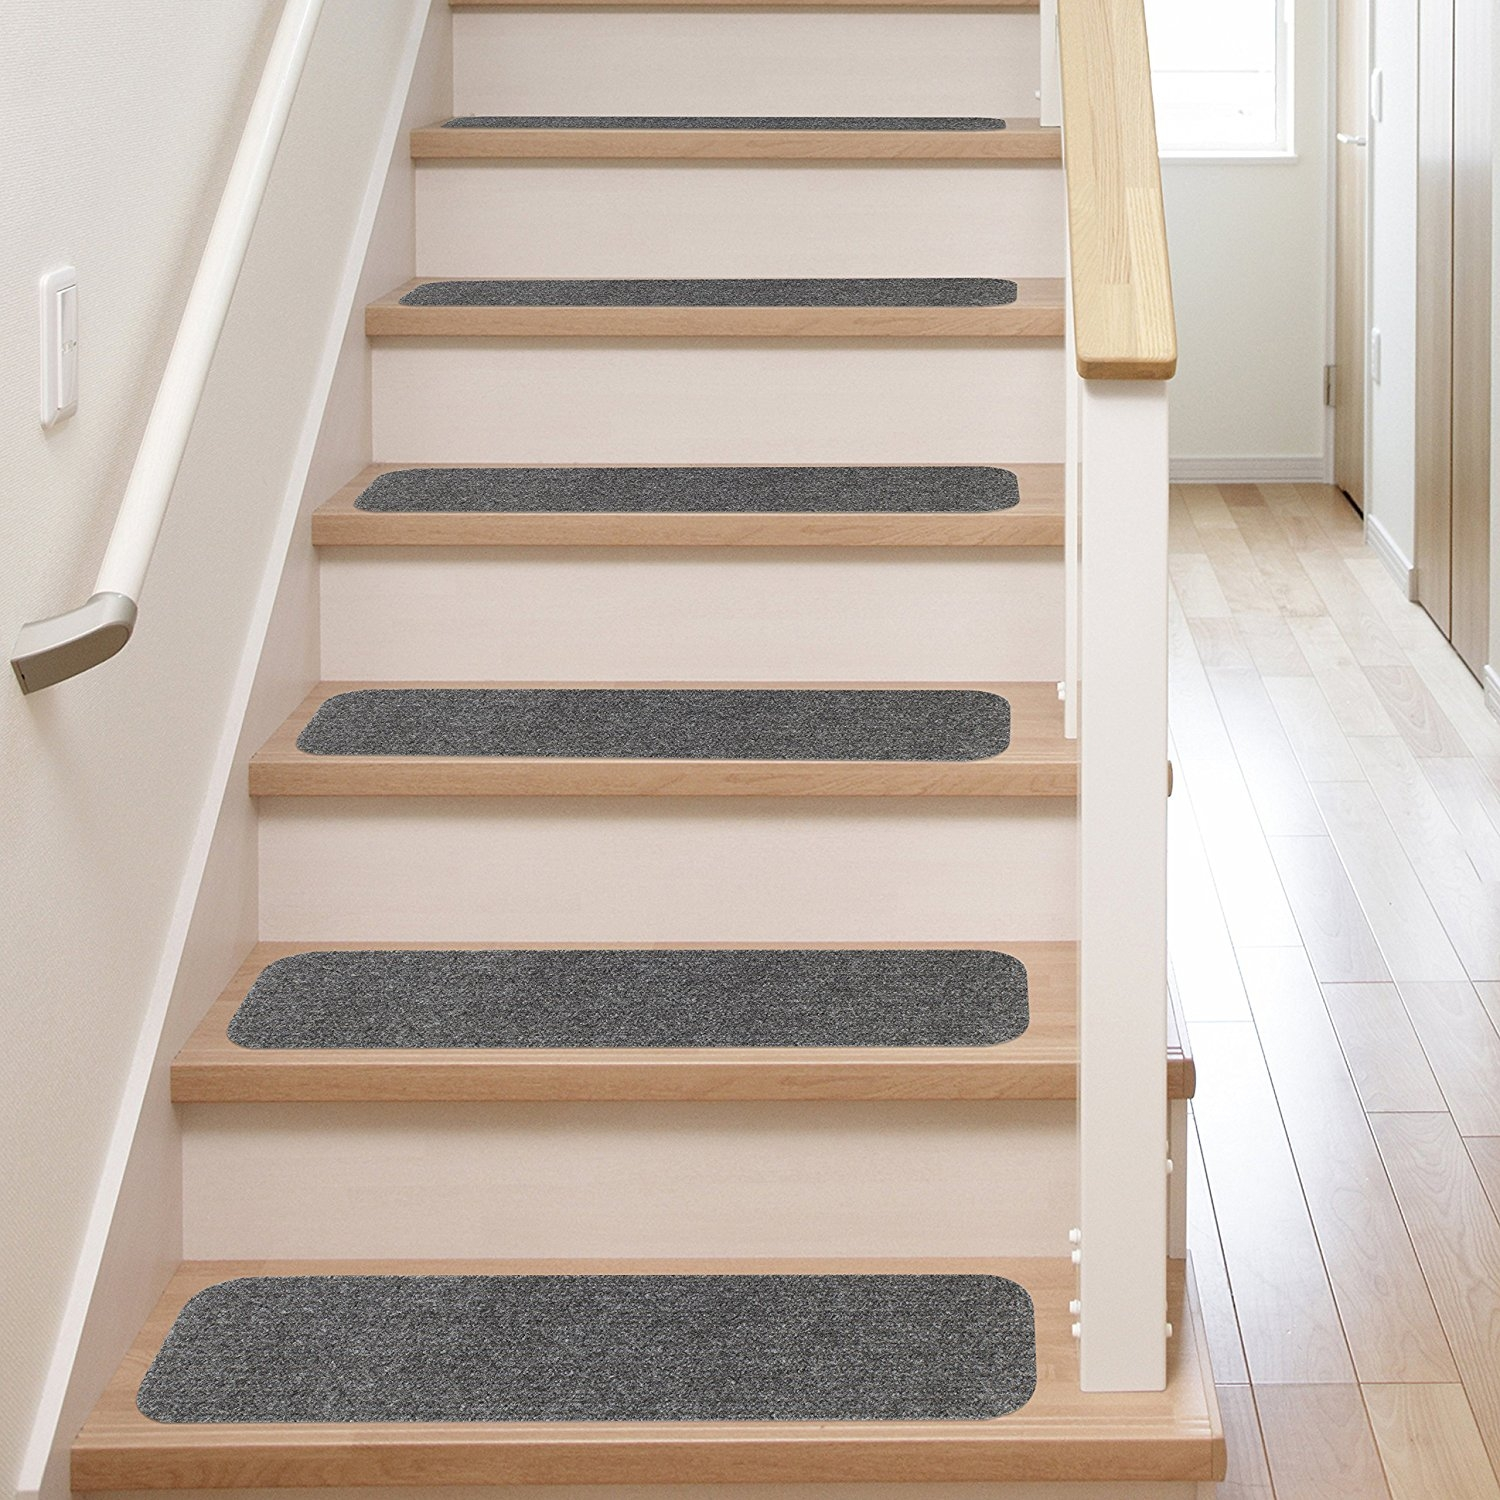 20 inspirations of individual carpet stair treads